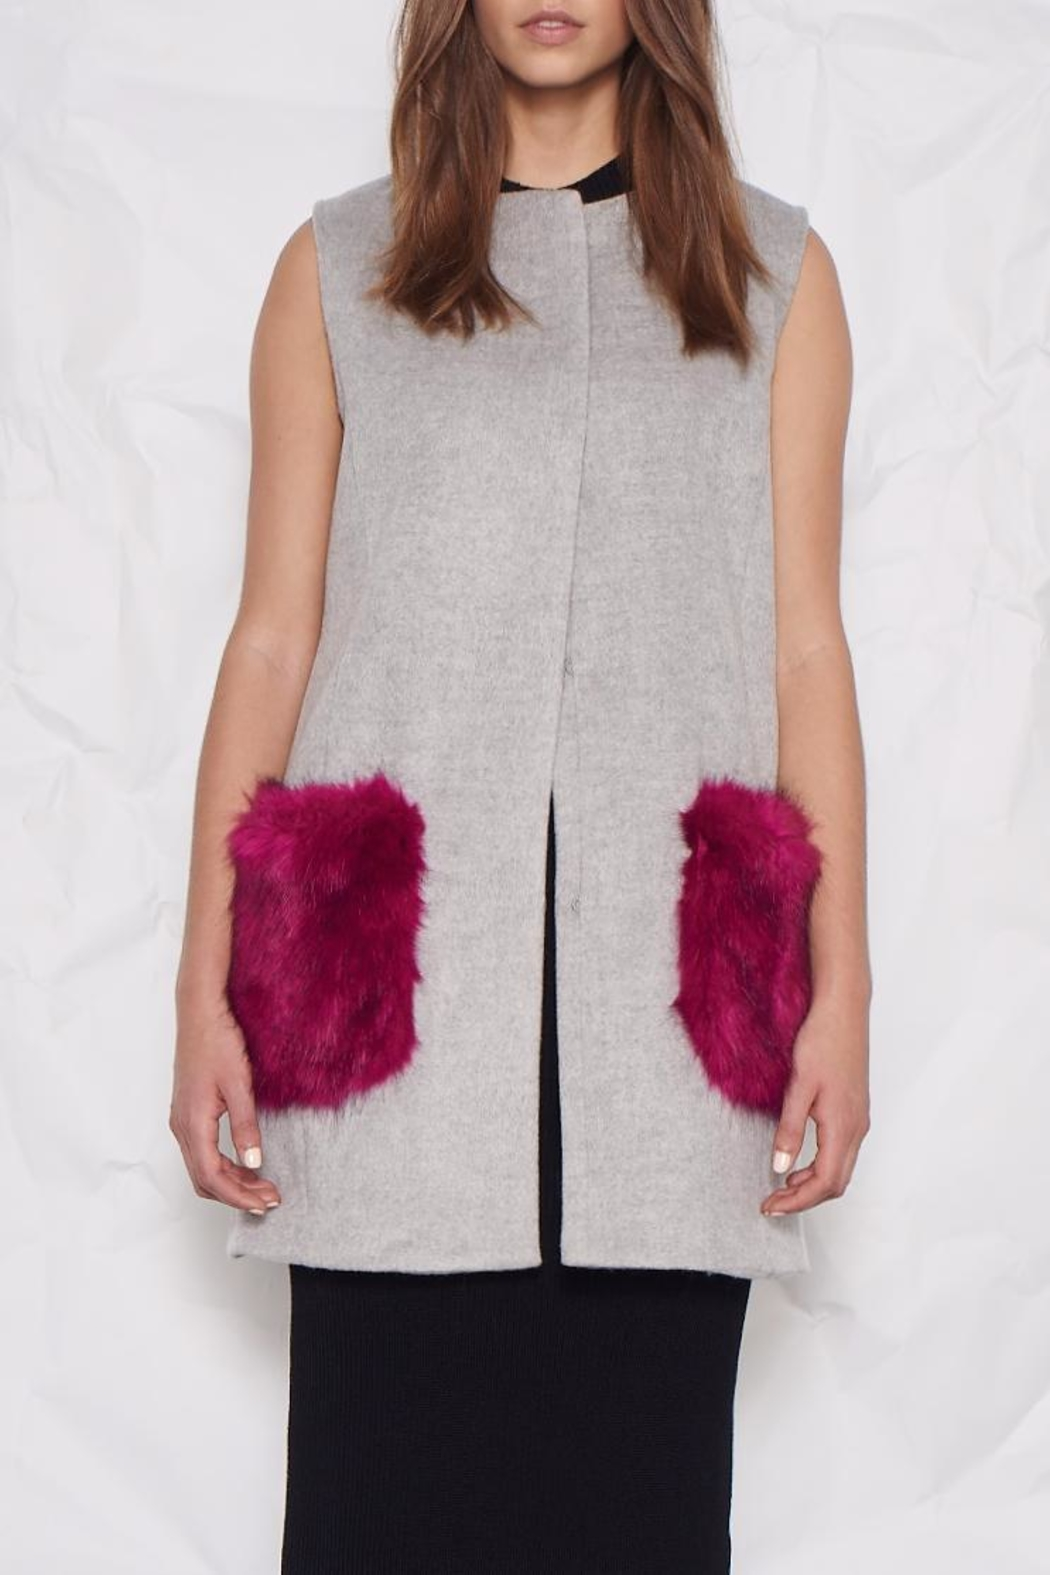 UNREAL FUR Vested Interest Gilet - Main Image